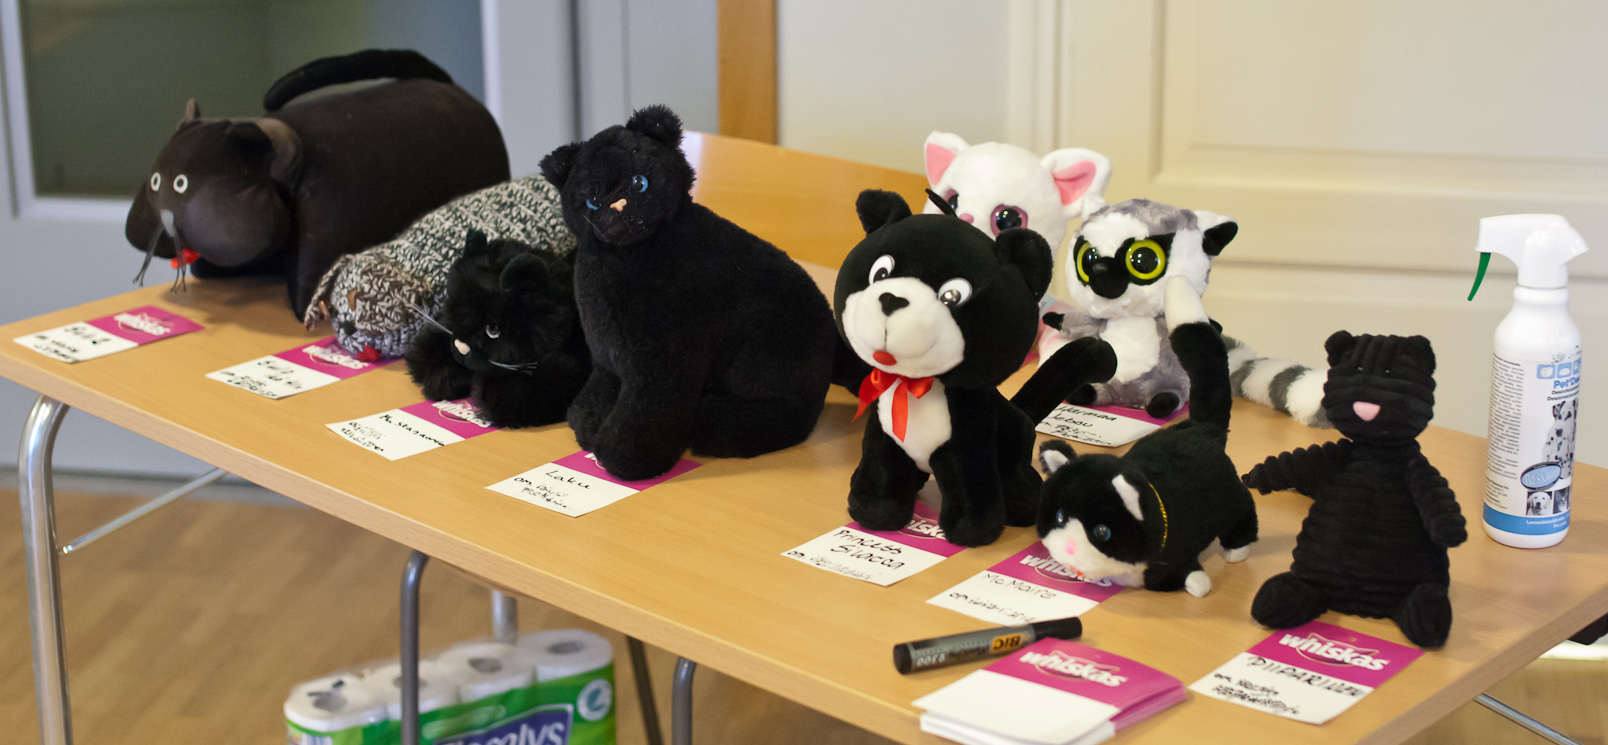 the toy cat contest, photo 165143, 2010-12-05